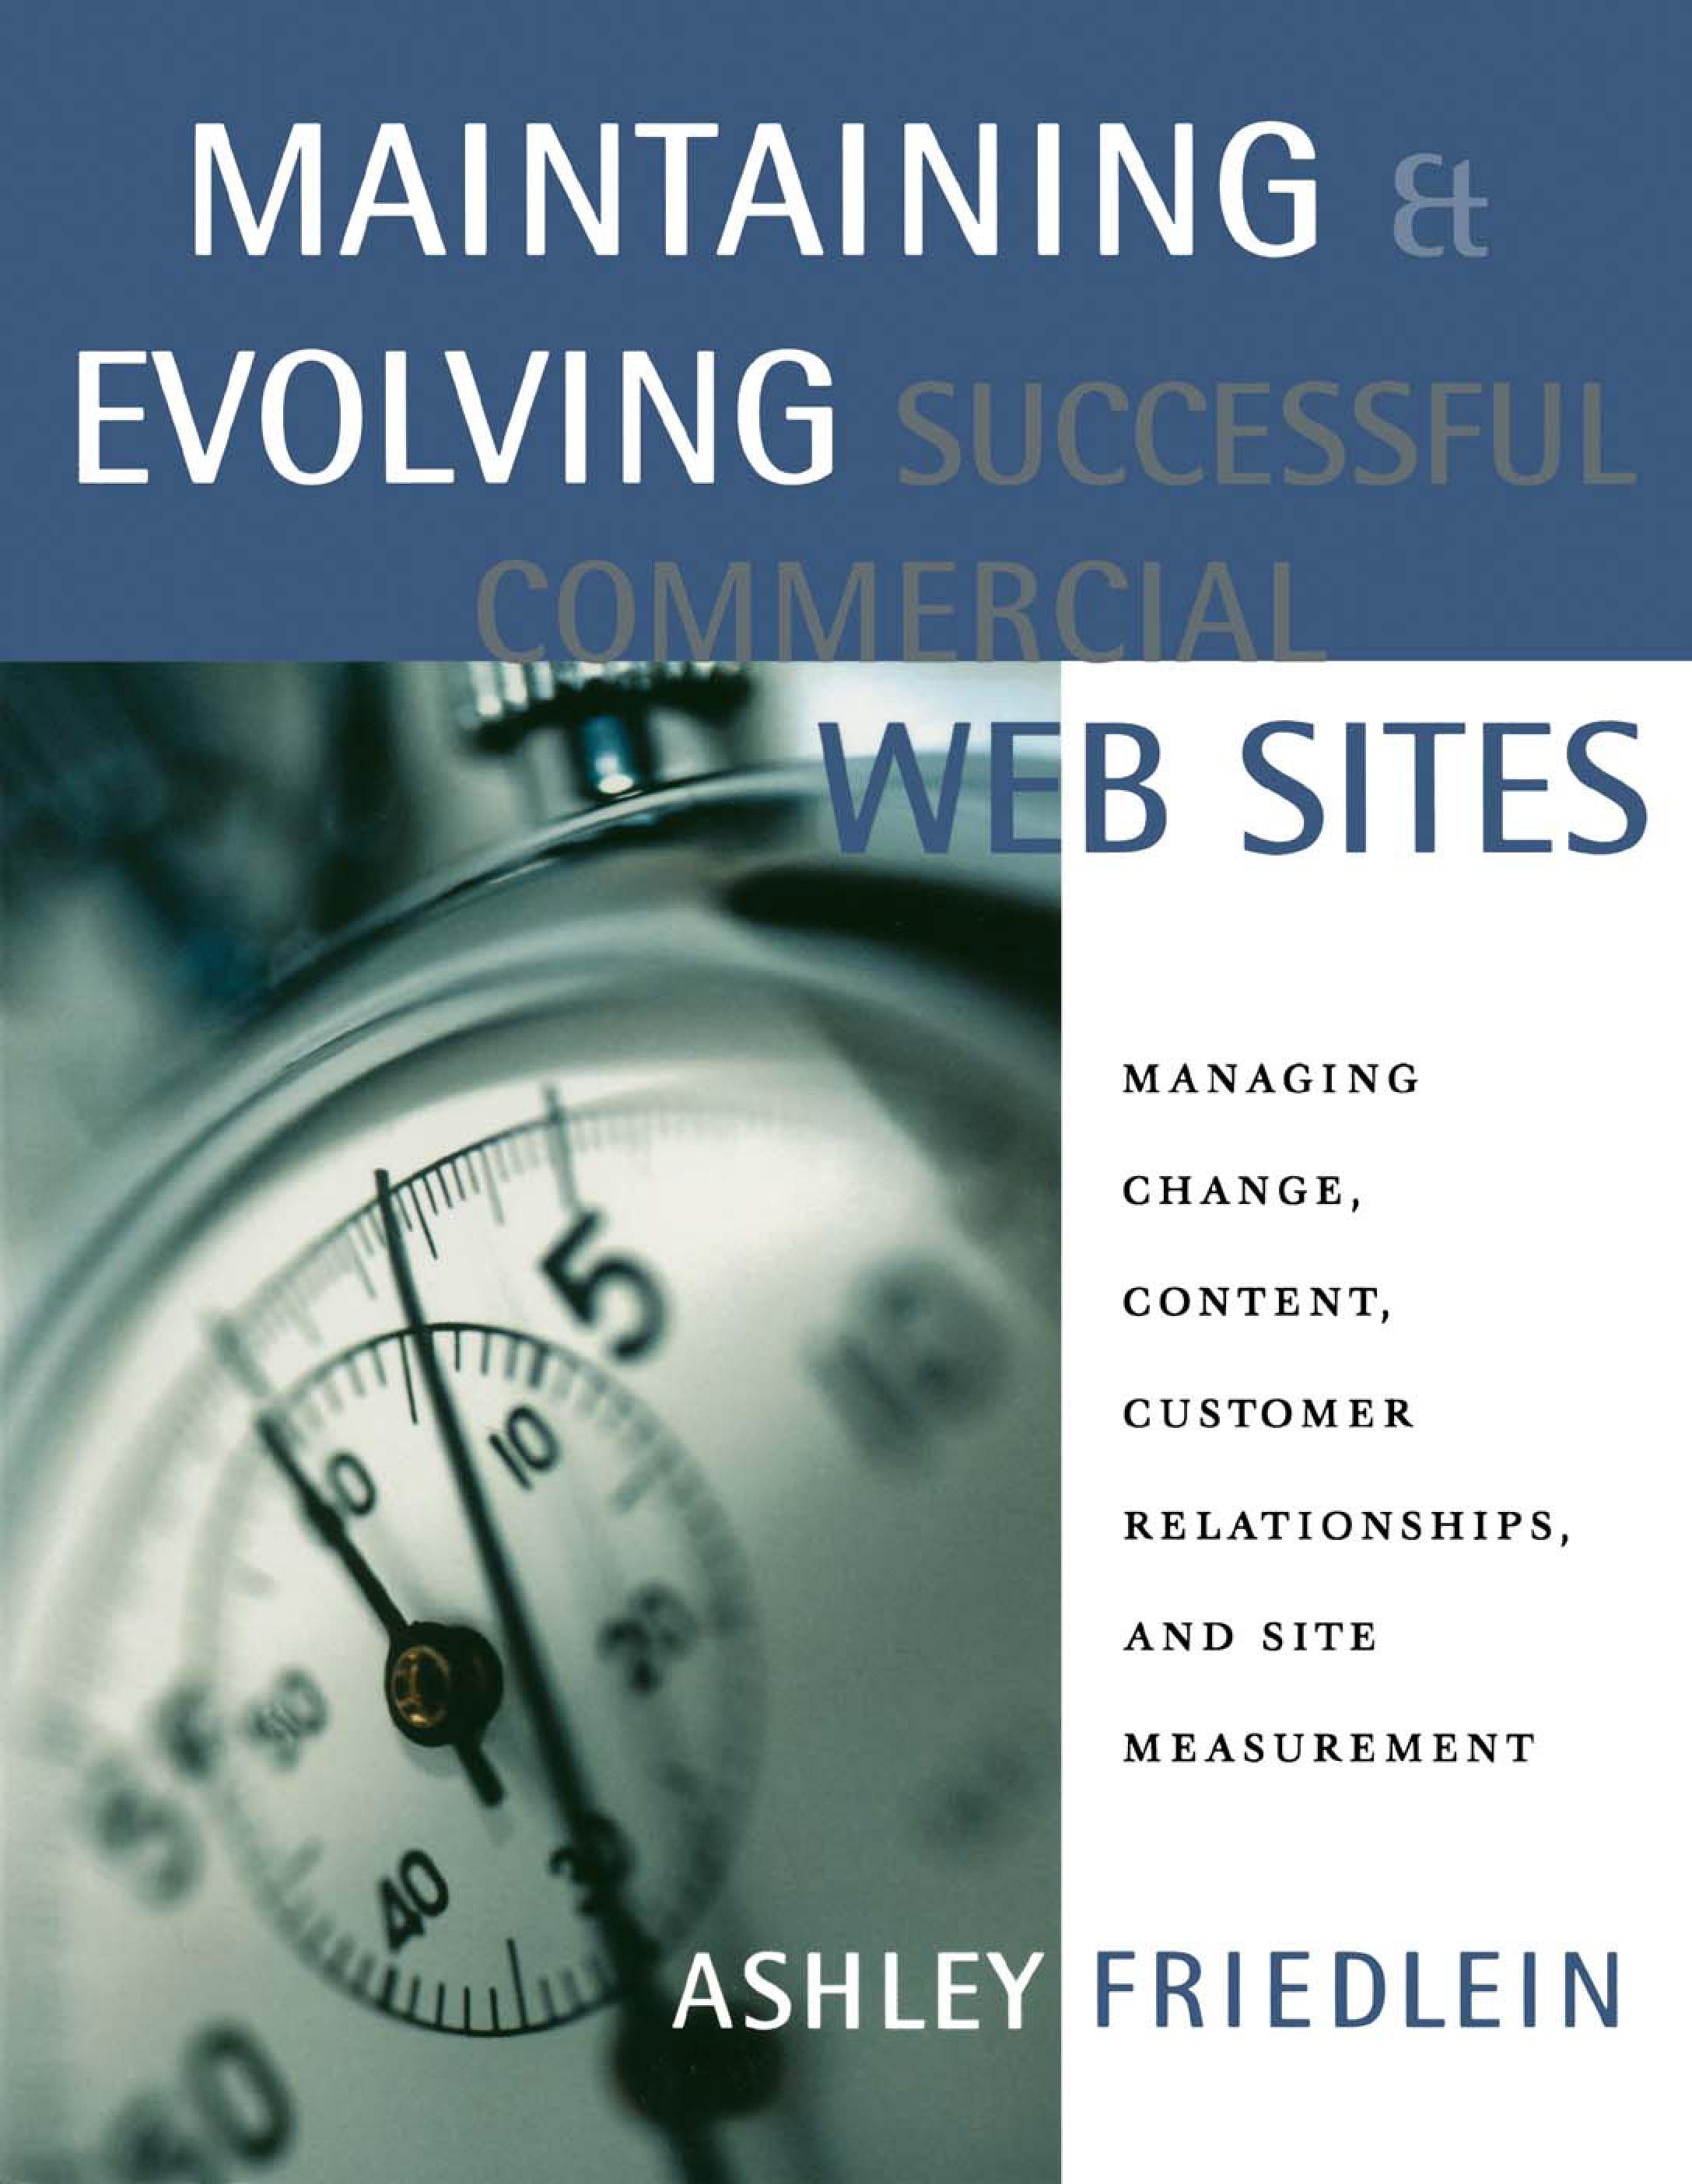 Maintaining and Evolving Successful Commercial Web Sites: Managing Change, Content, Customer Relationships, and Site Measurement EB9780080510644